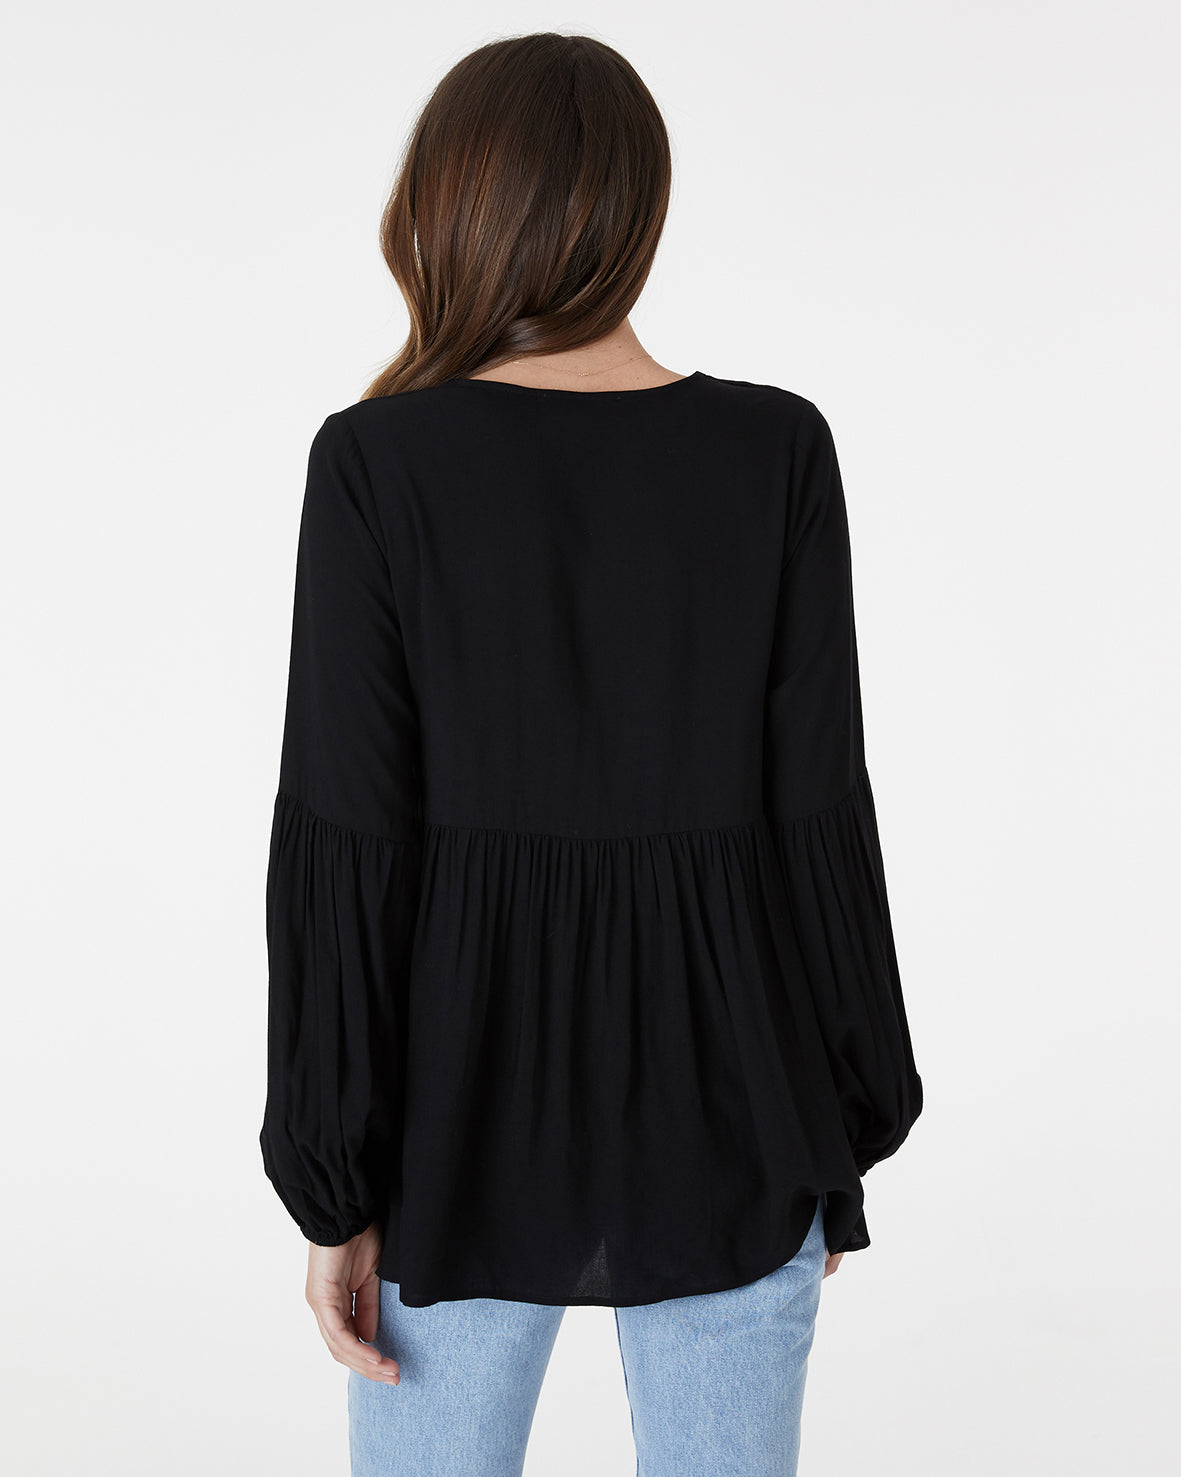 RENDEZVOUS TOP - BLACK